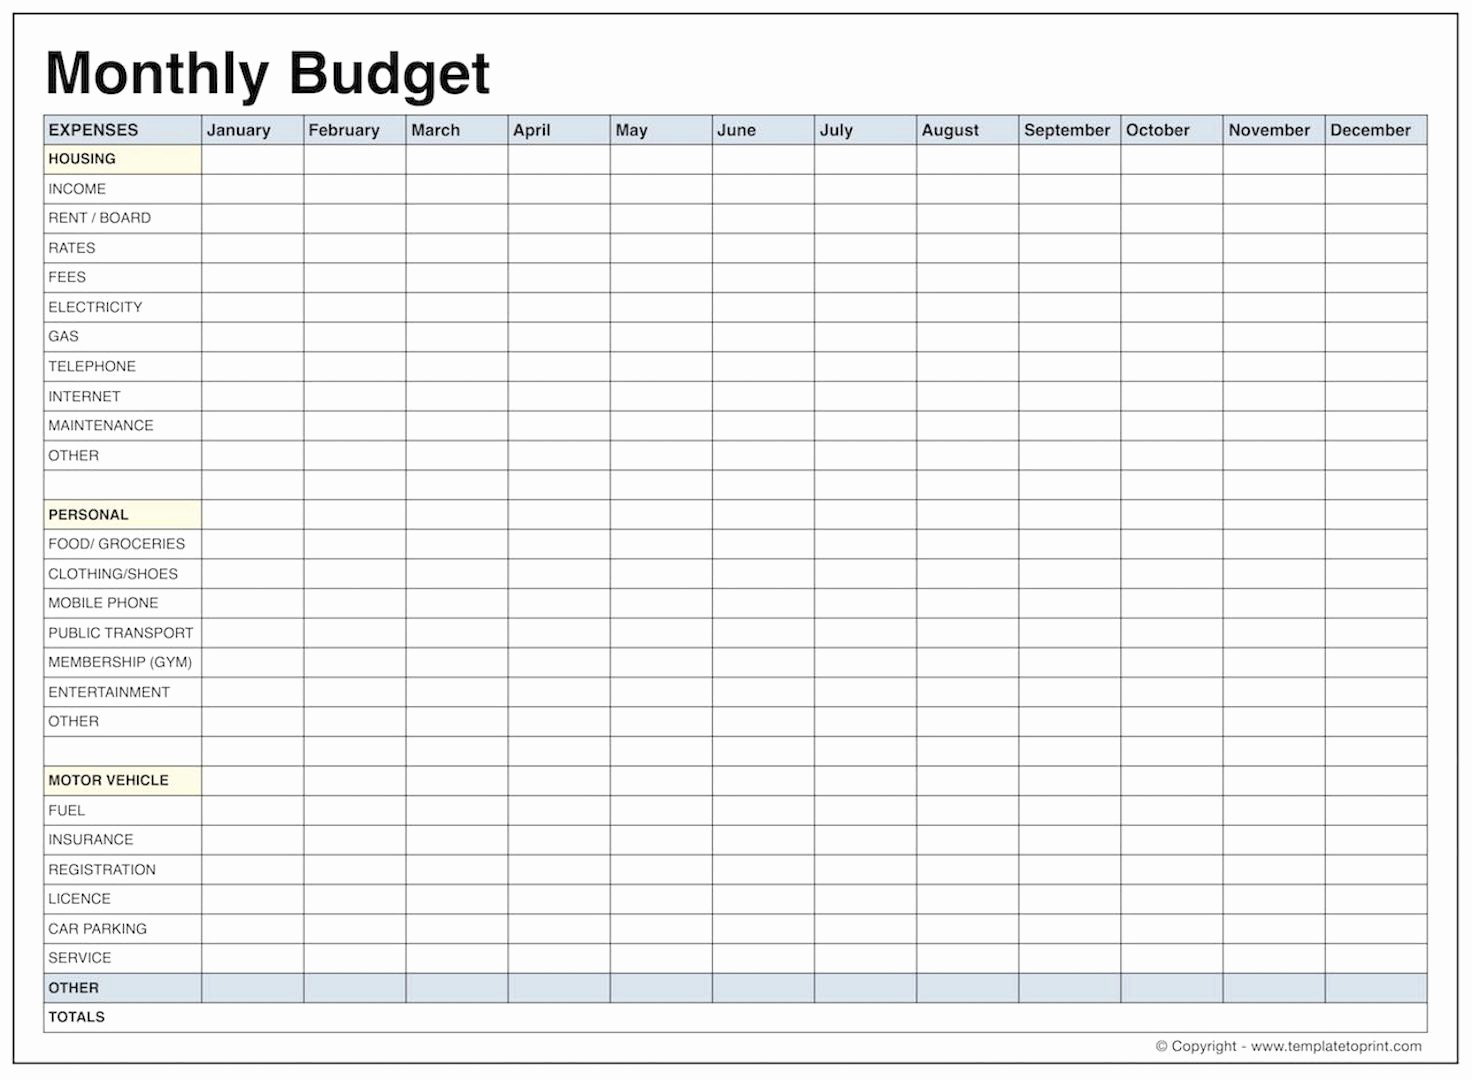 013 Printable Monthly Budget Template Free Best Of Blank Bud Pdf